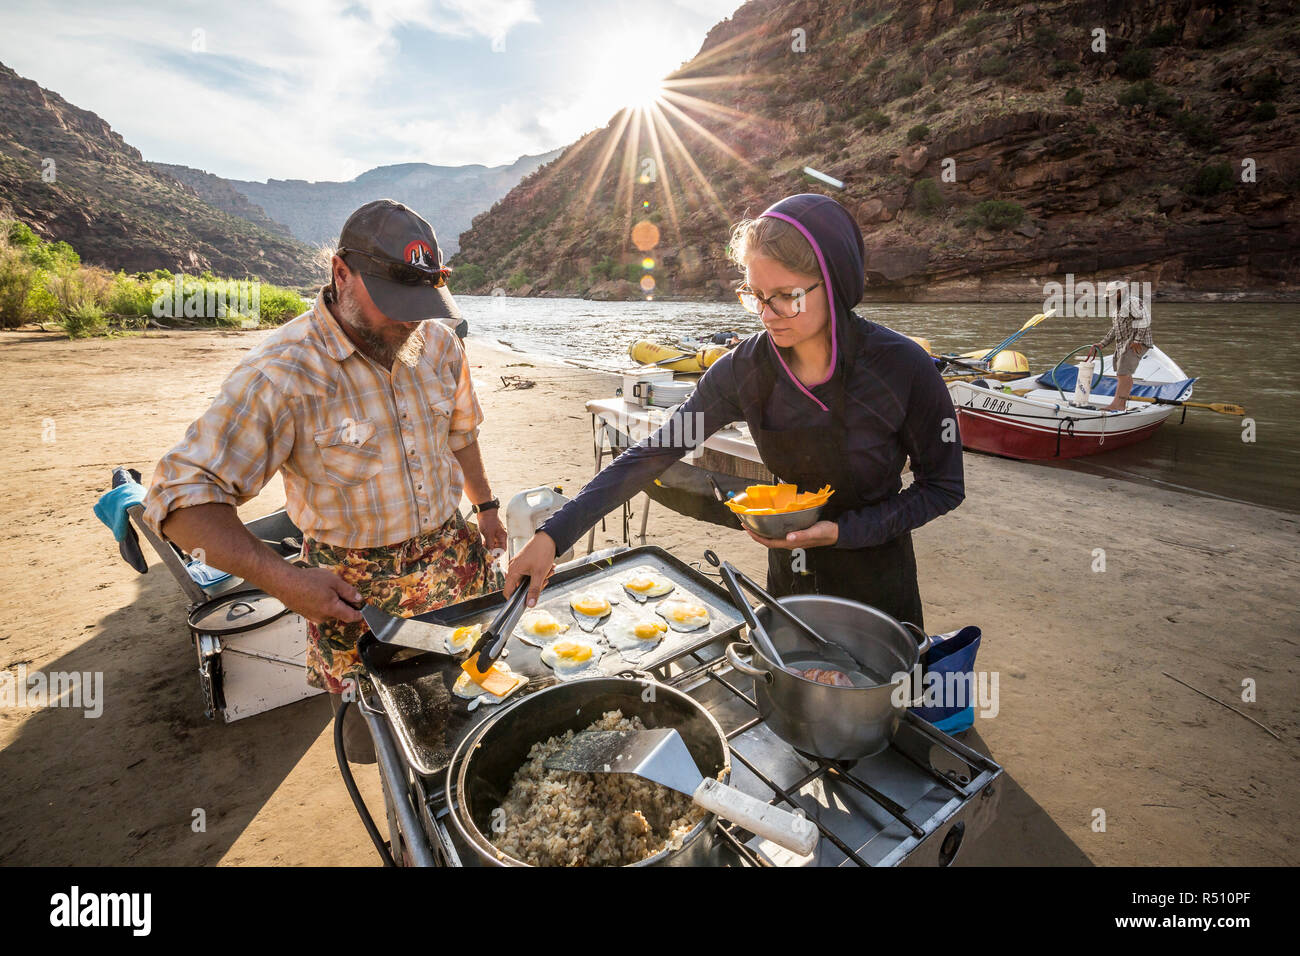 Two rafting guides cooking a meal at camp while on a Green river rafting trip, Desolation/GrayCanyon section, Utah, USA - Stock Image